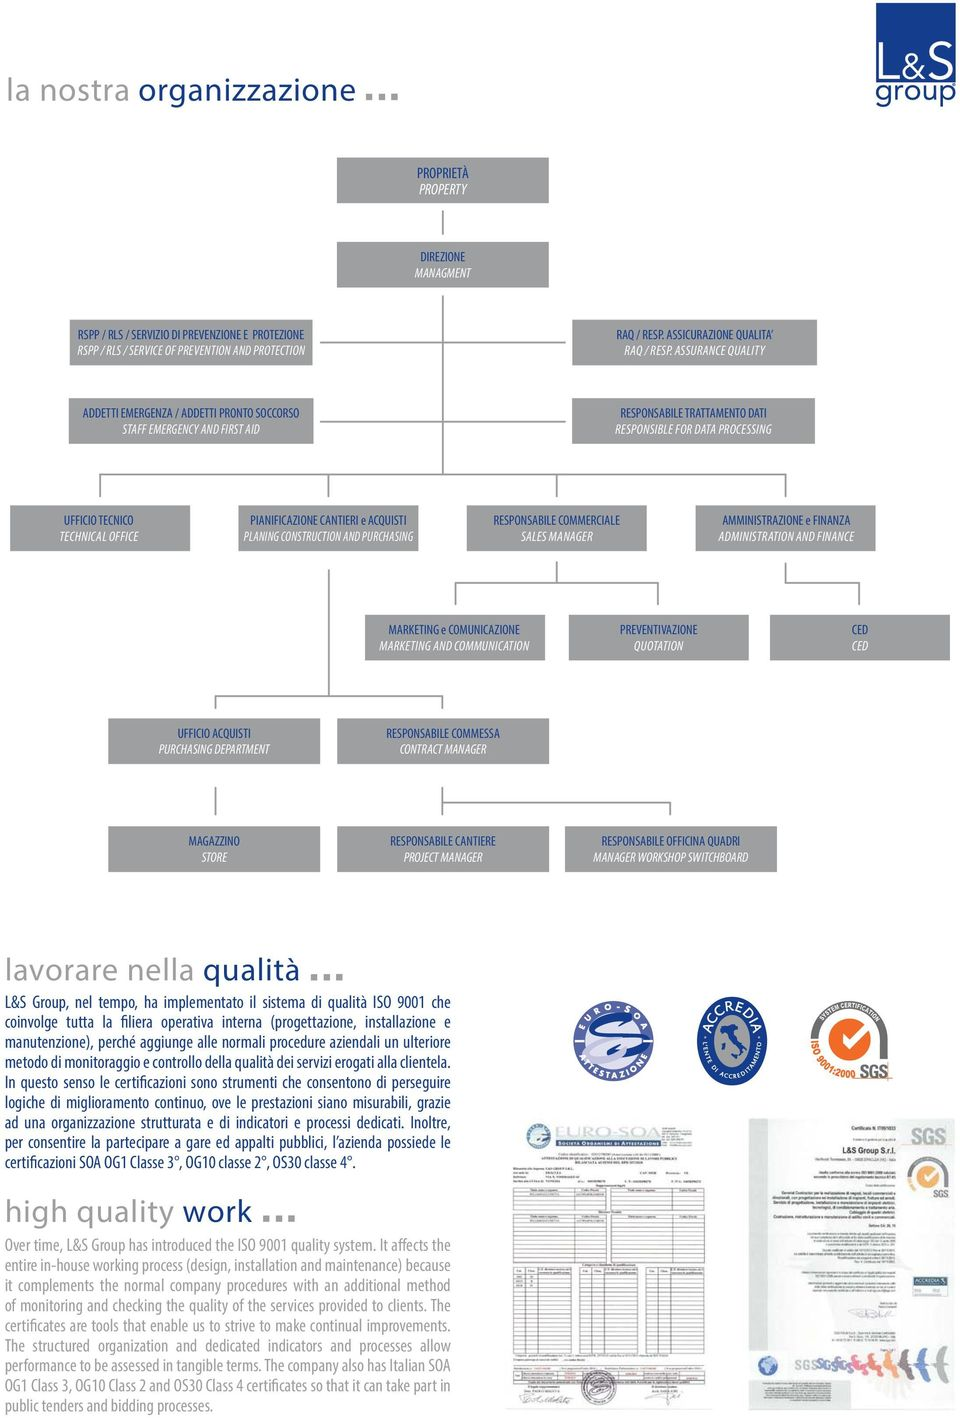 ASSURANCE QUALITY ADDETTI EMERGENZA / ADDETTI PRONTO SOCCORSO STAFF EMERGENCY AND FIRST AID RESPONSABILE TRATTAMENTO DATI RESPONSIBLE FOR DATA PROCESSING UFFICIO TECNICO TECHNICAL OFFICE